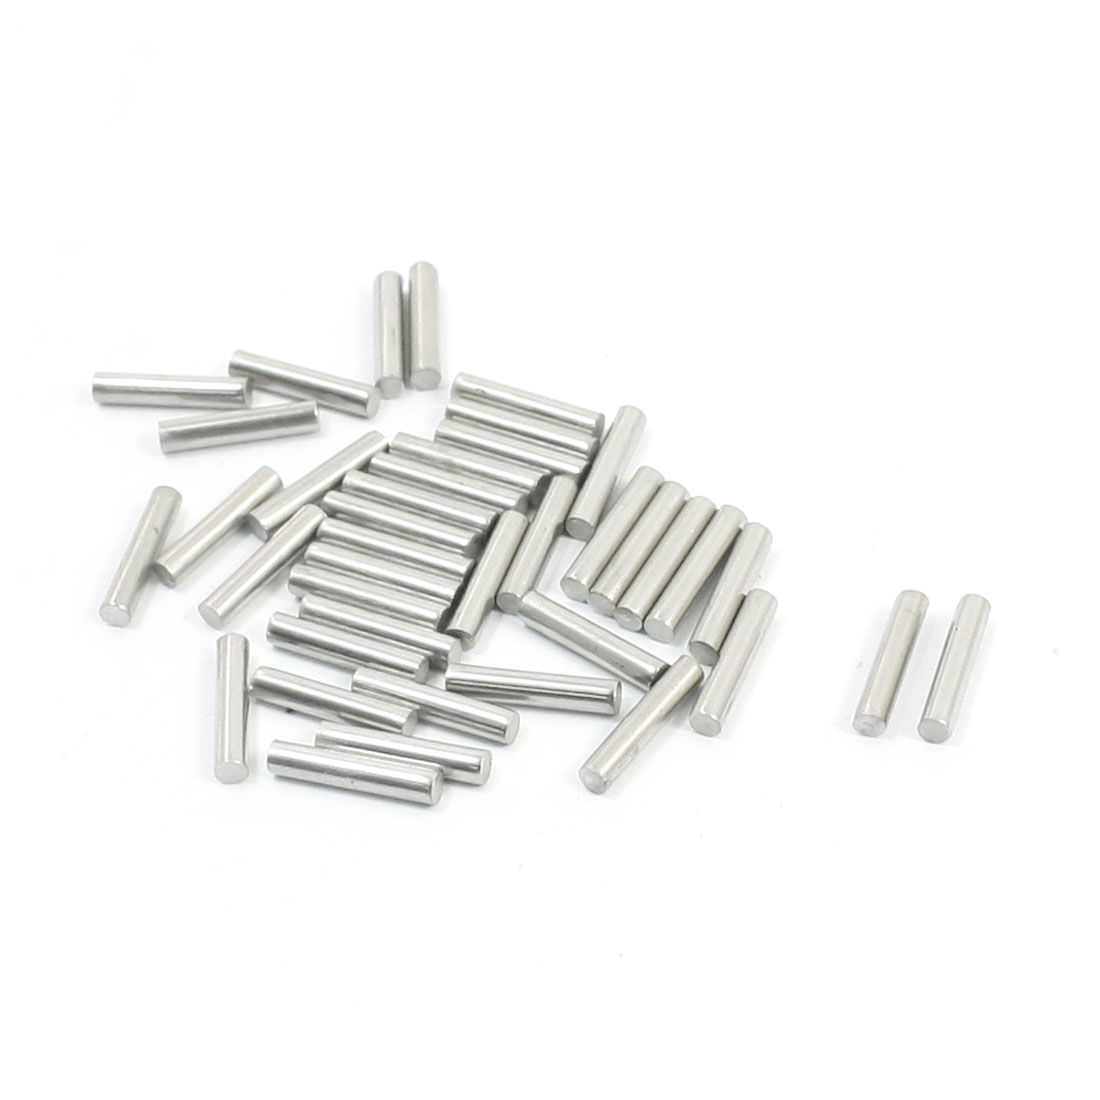 40PCS RC Car Toy Spare Part Stainless Steel Round Bar Shaft 10mmx2mm